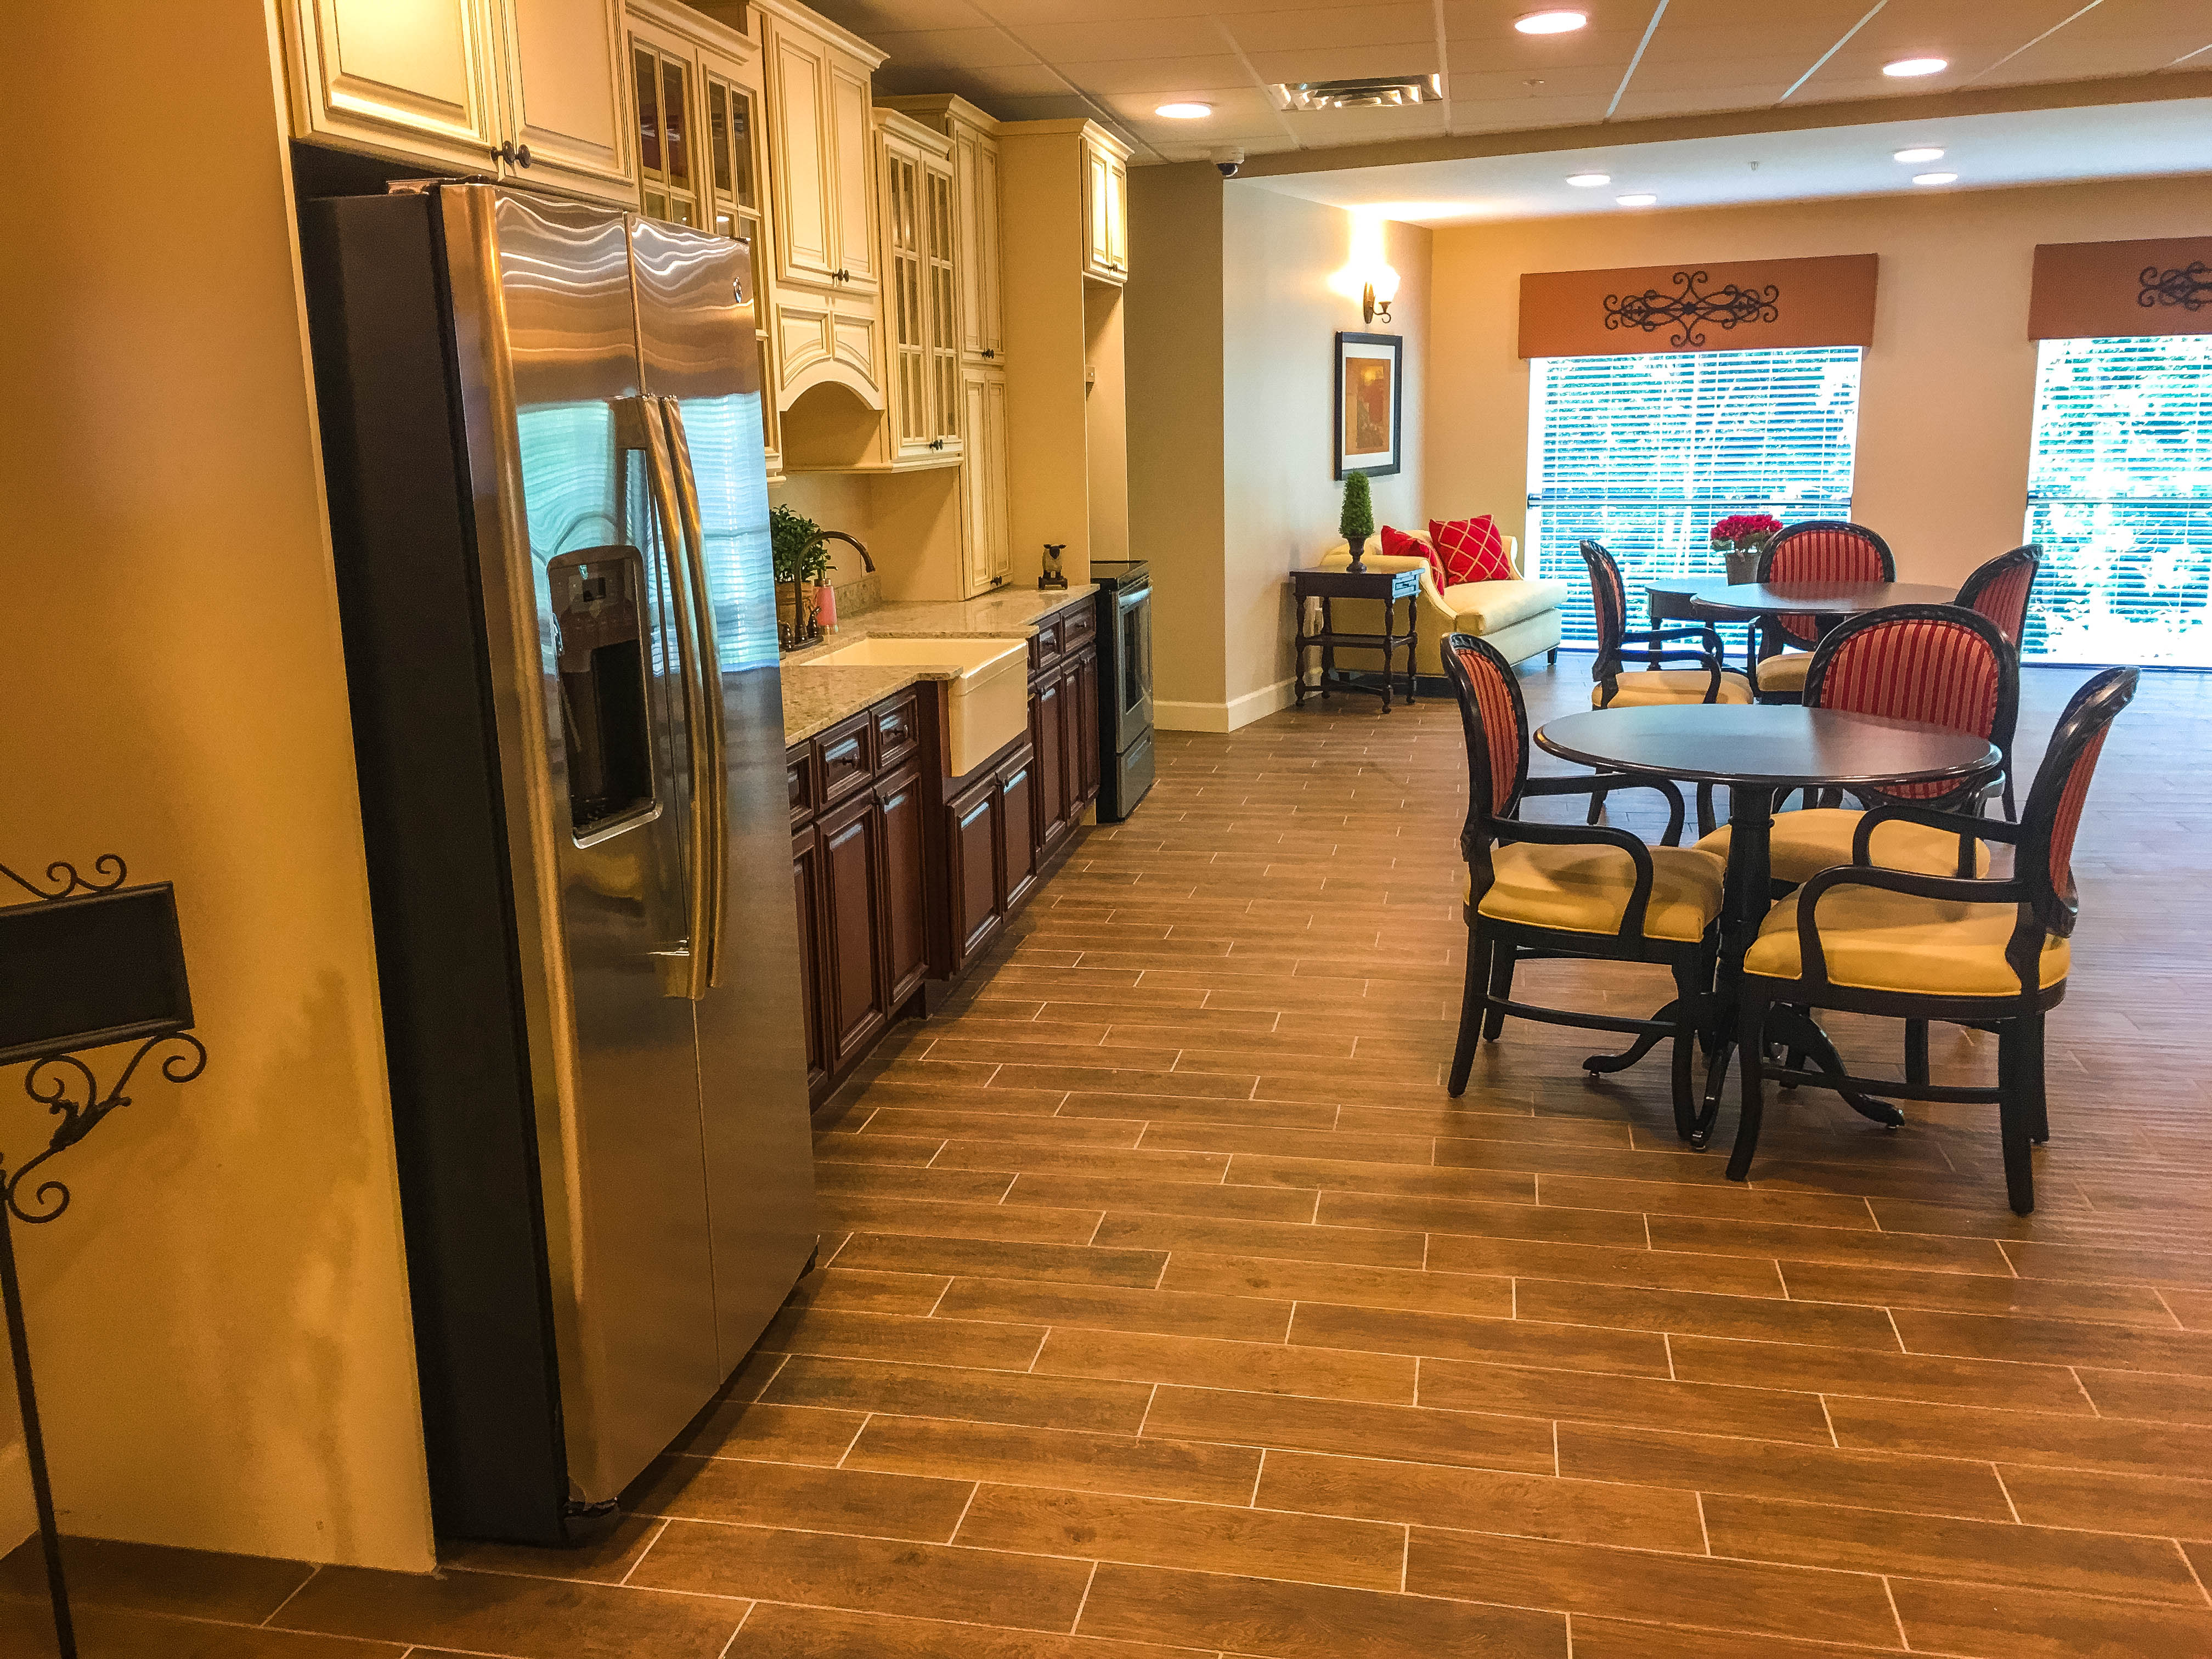 ... Assisted Living / Memory Care Facility Located In Alpharetta, GA. The  Facility Has A 4 Story Wing (Assisted Living) And A 1 Story Wing (Memory  Care) ...